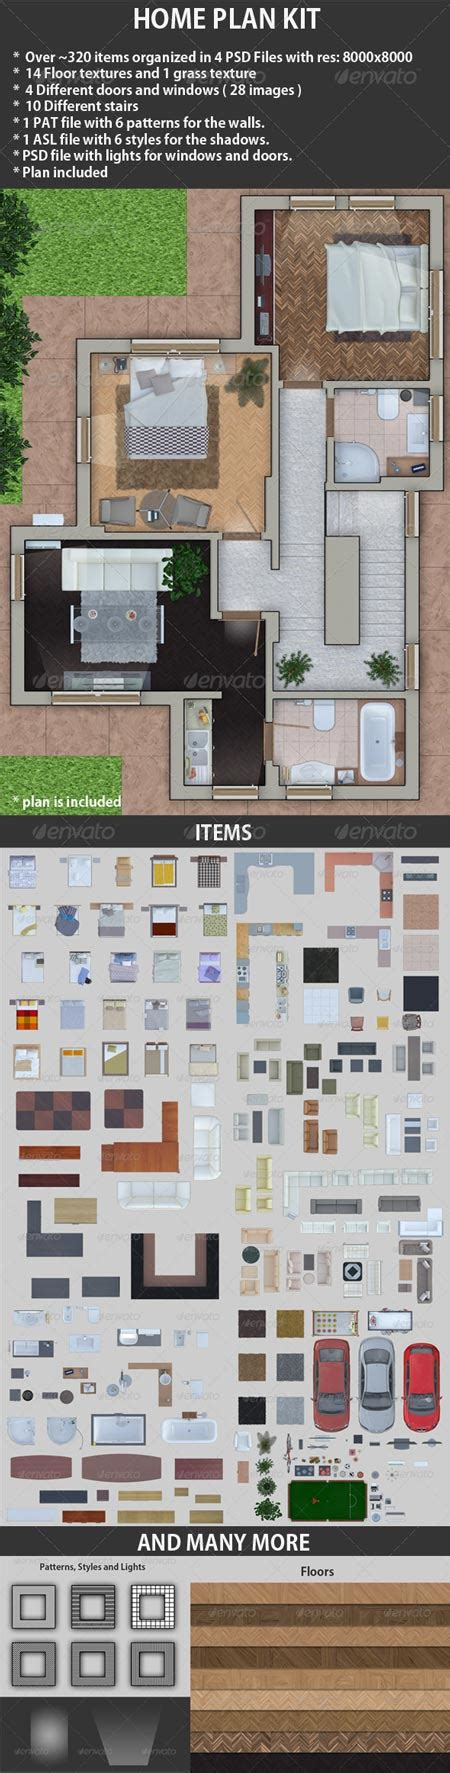 3d home kit design works furniture plan psd layered material all design template photoshop vector